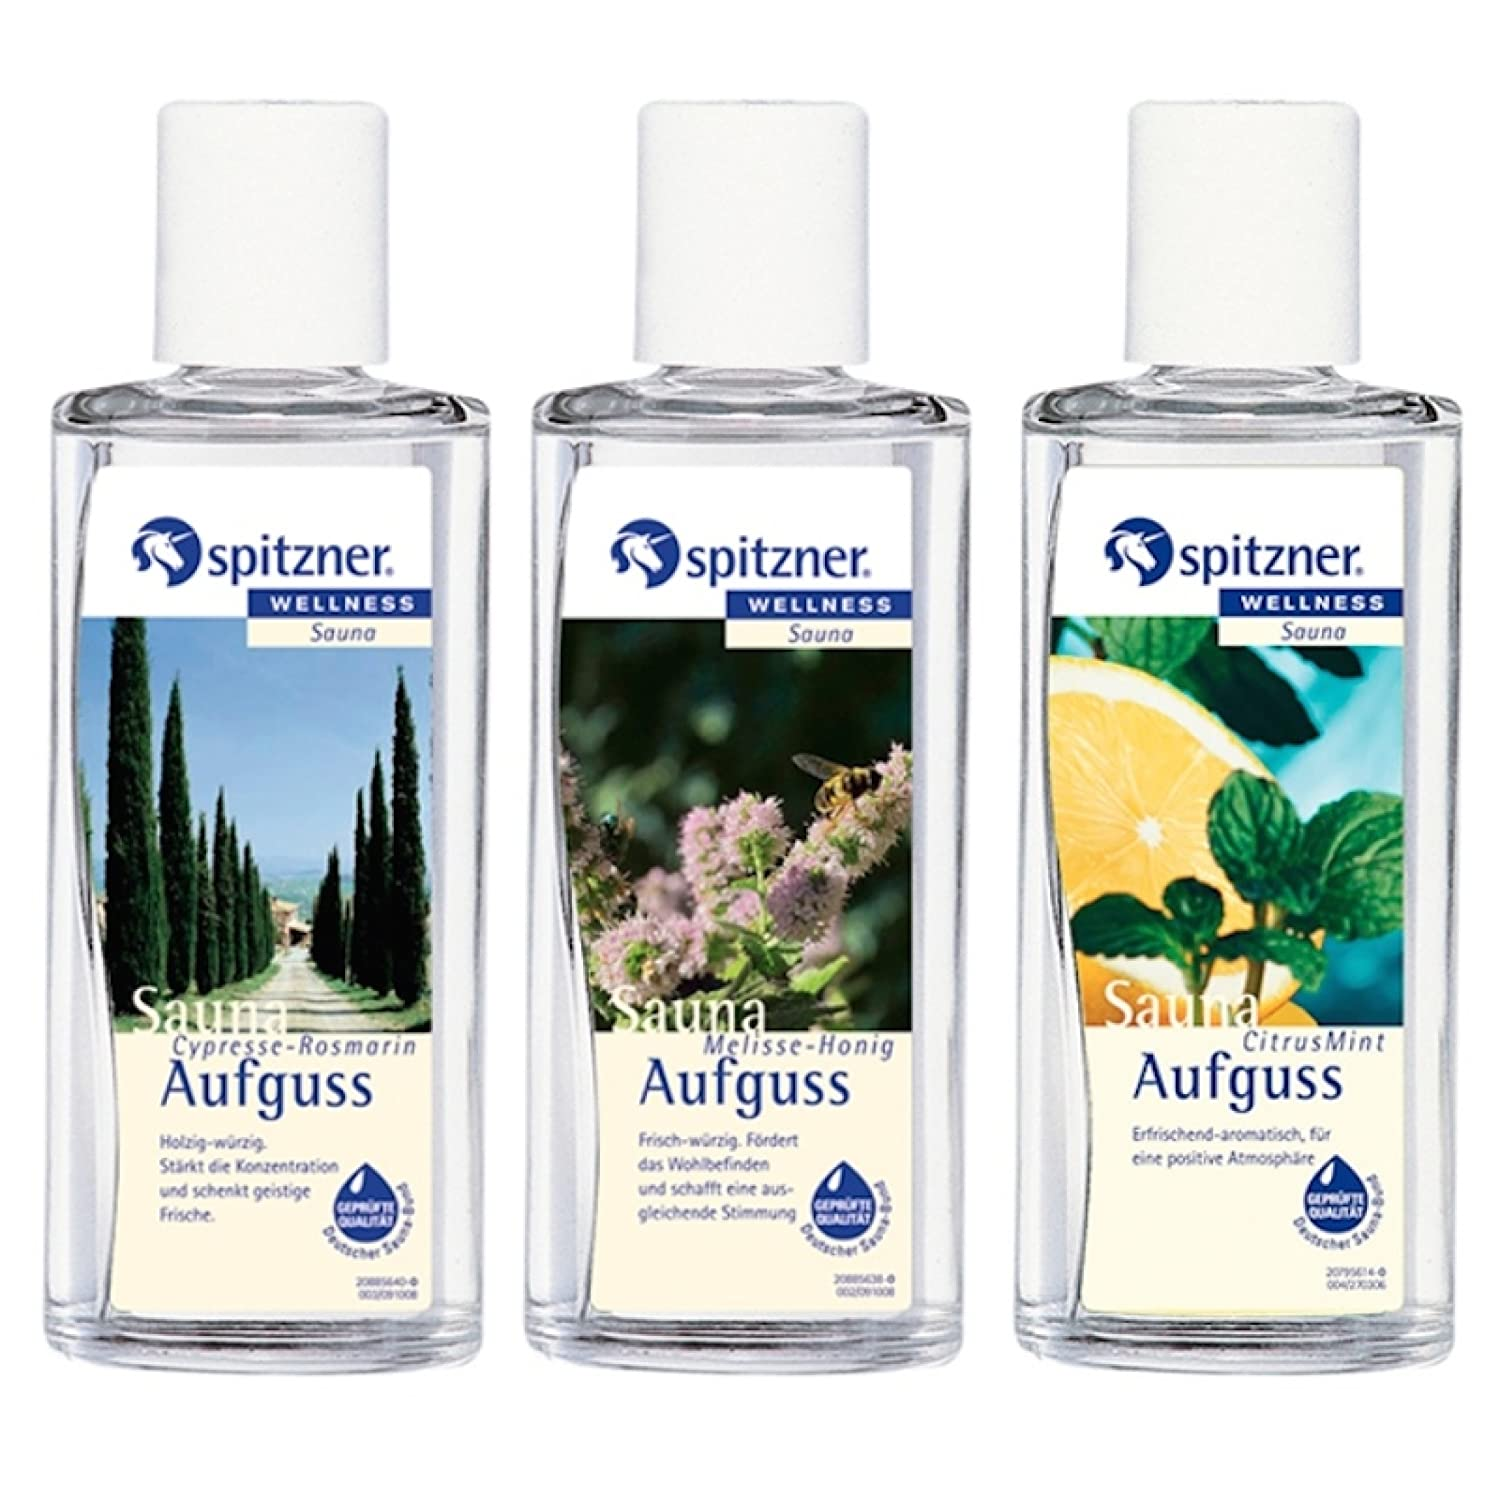 Spitzner sauna infusion, 3 fragrances, cypress-rosemary, honey-balm and citrus with 190 ml each